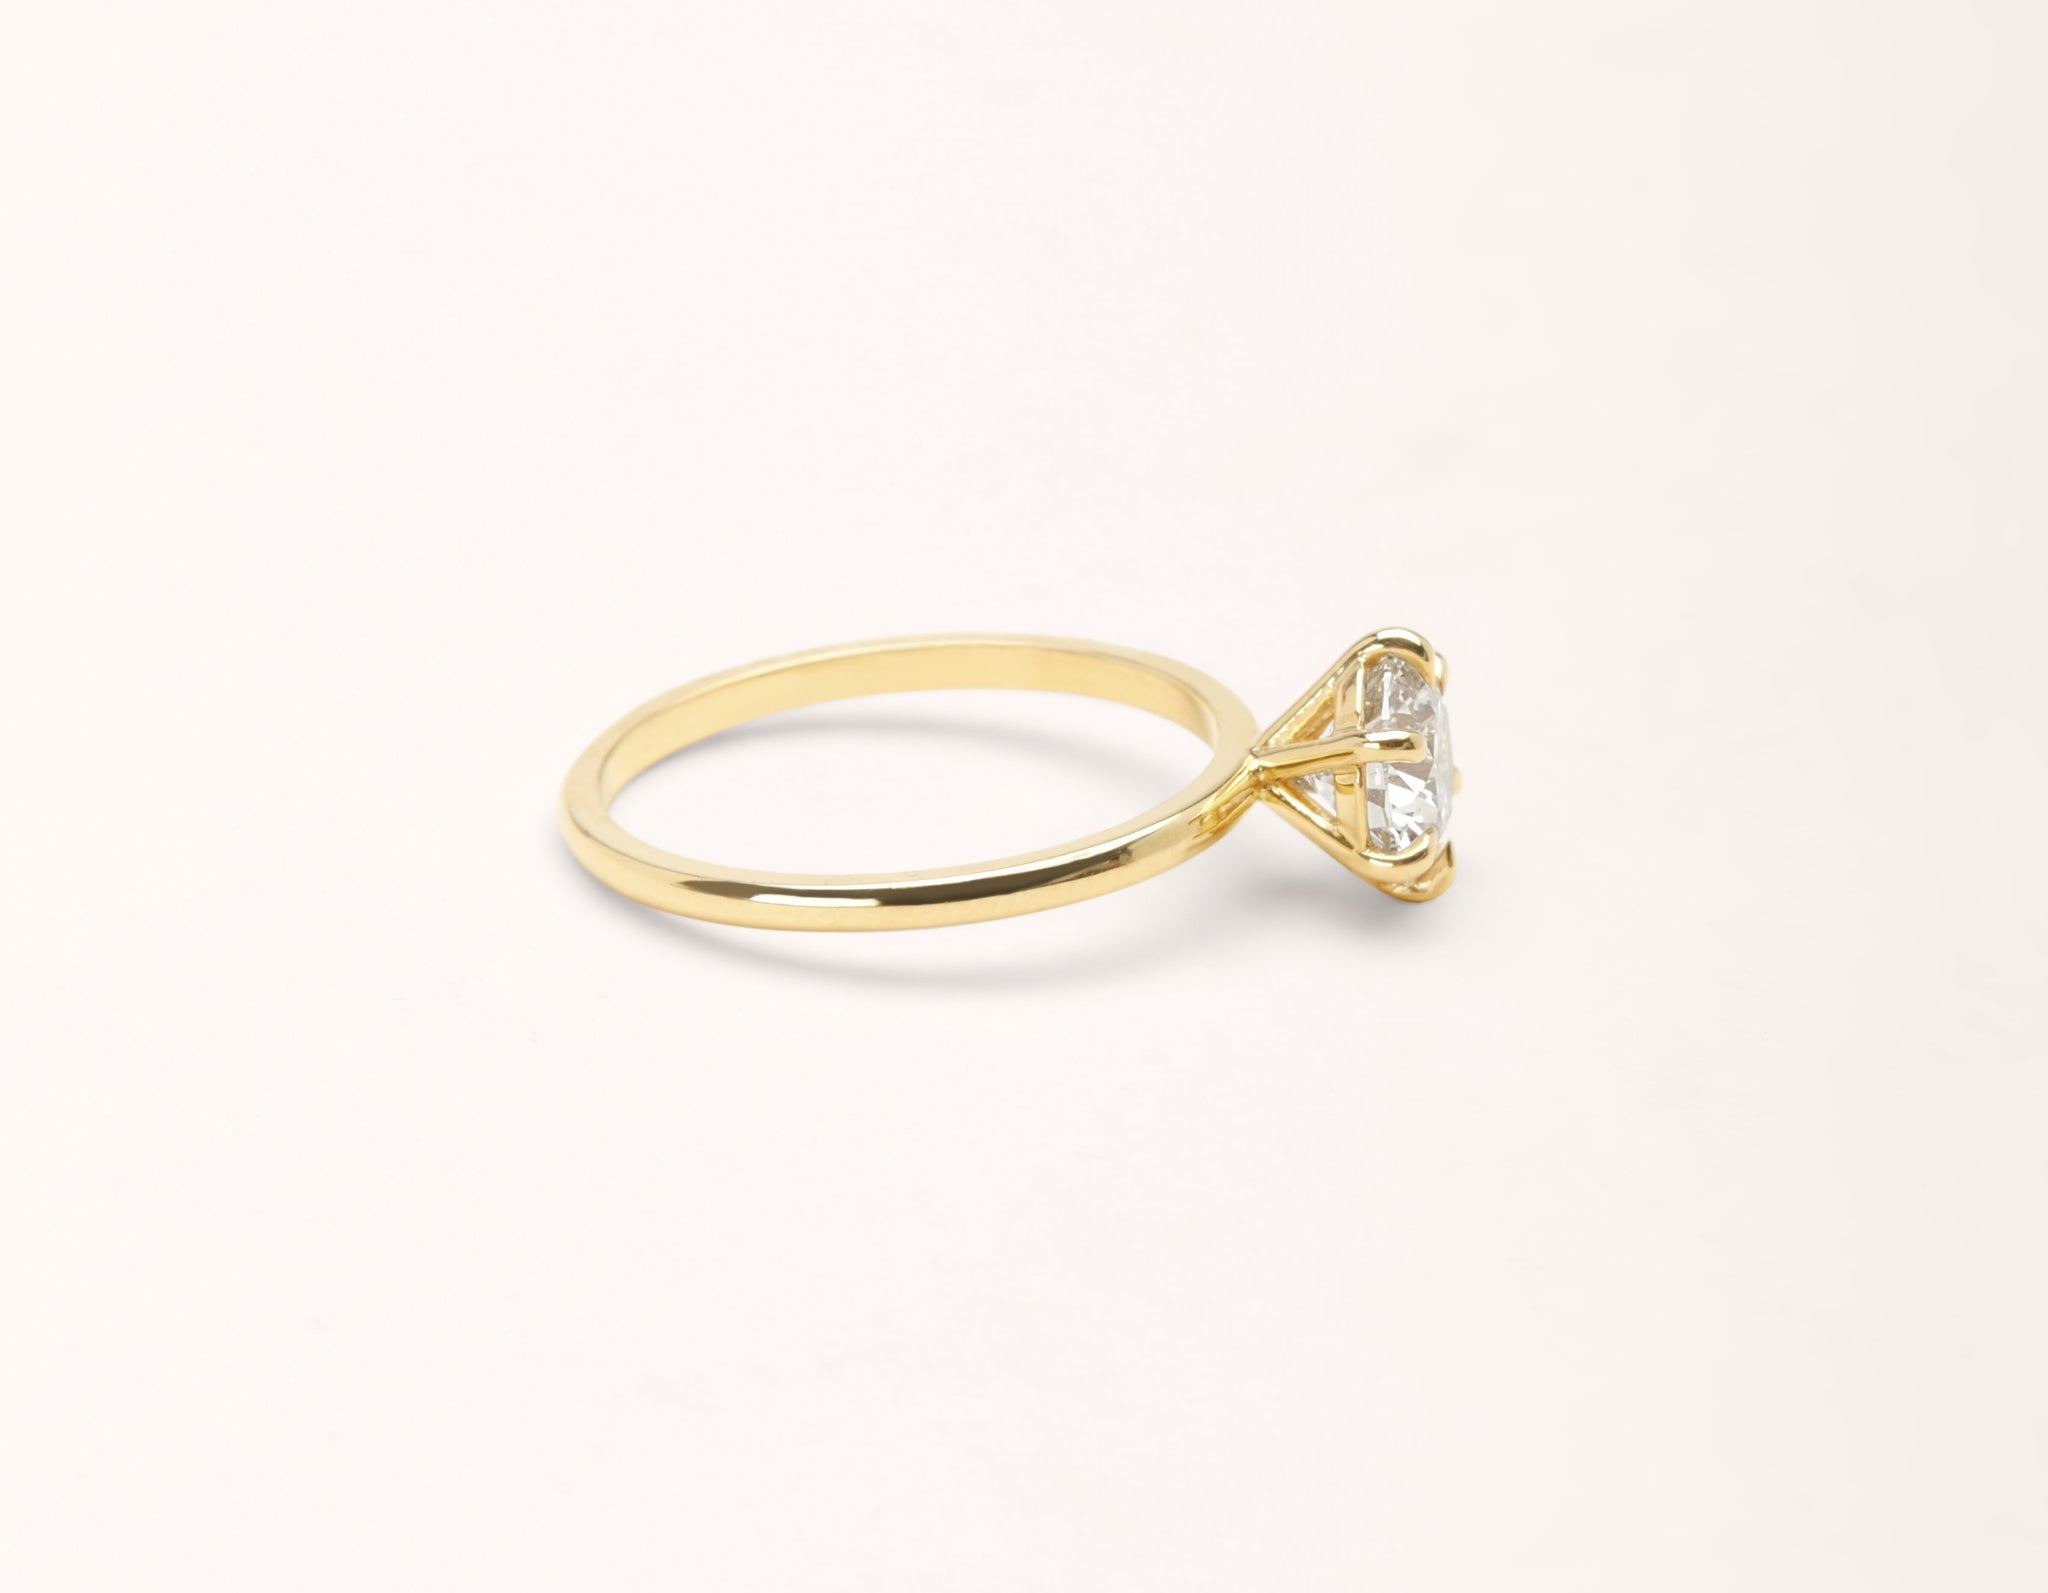 Simple modern 18k solid yellow gold 1 carat round brilliant Solitaire diamond engagement ring Vrai & Oro